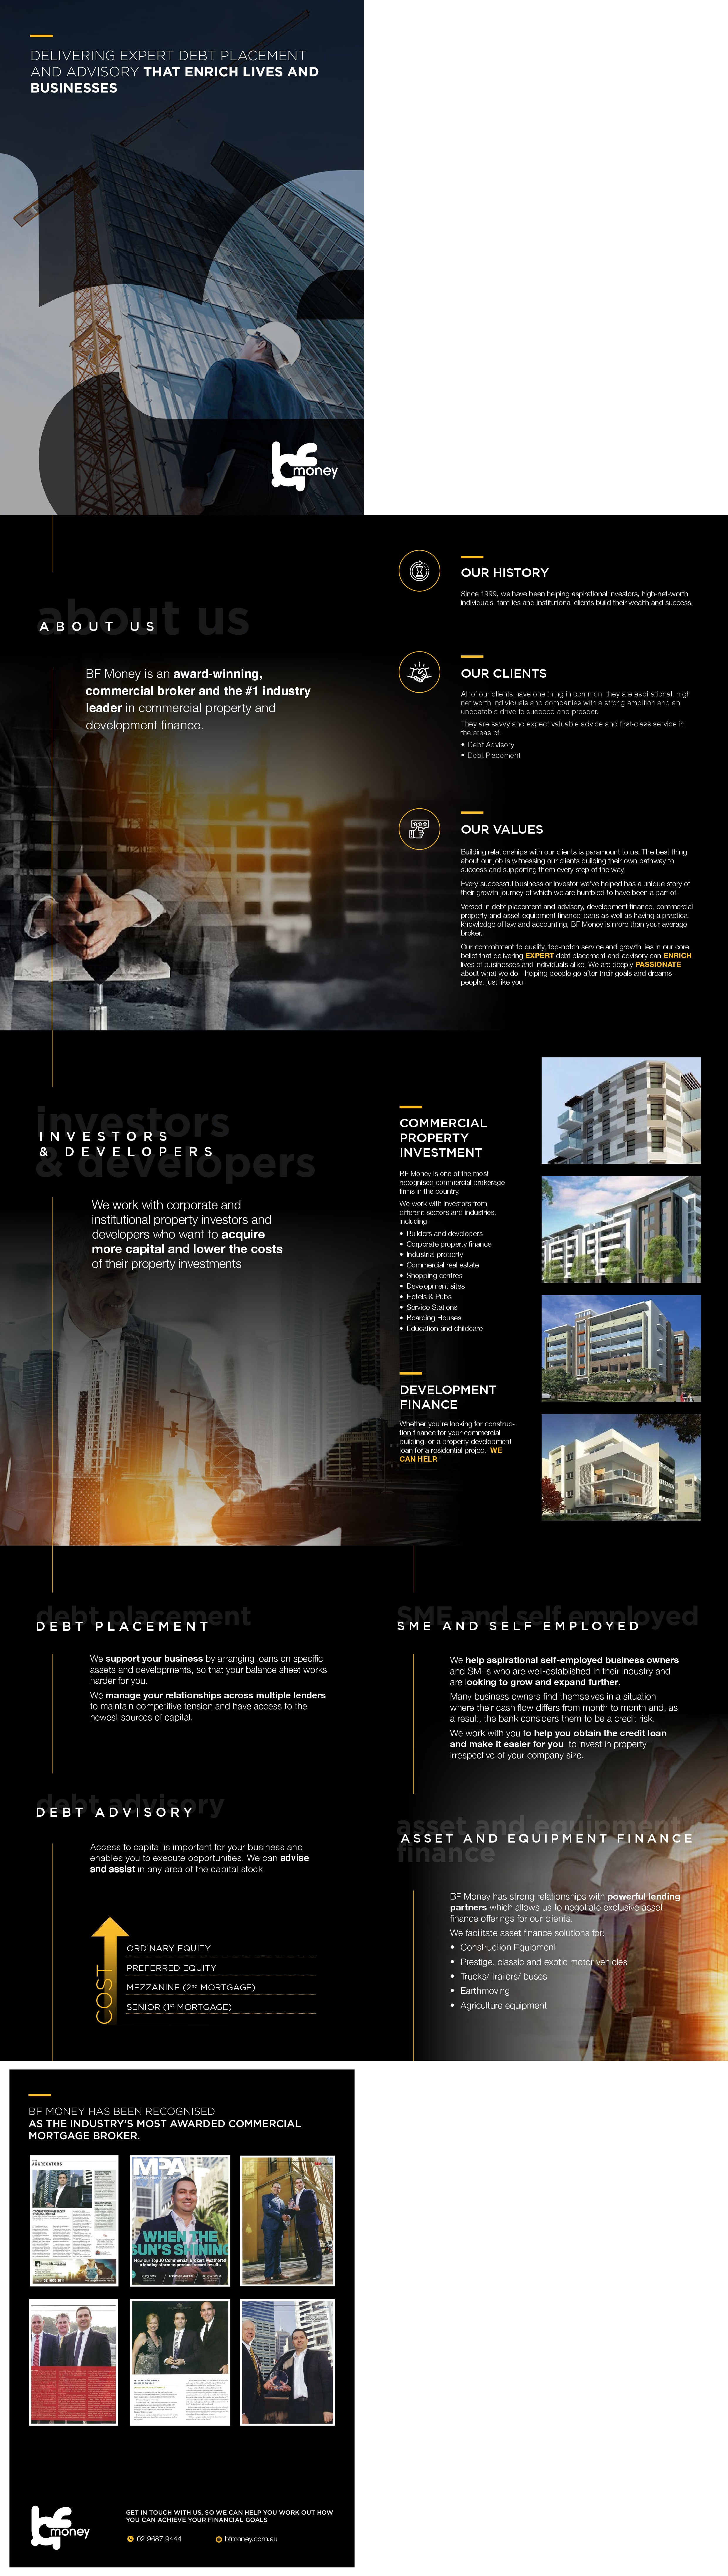 Design a brochure for our ambitious company